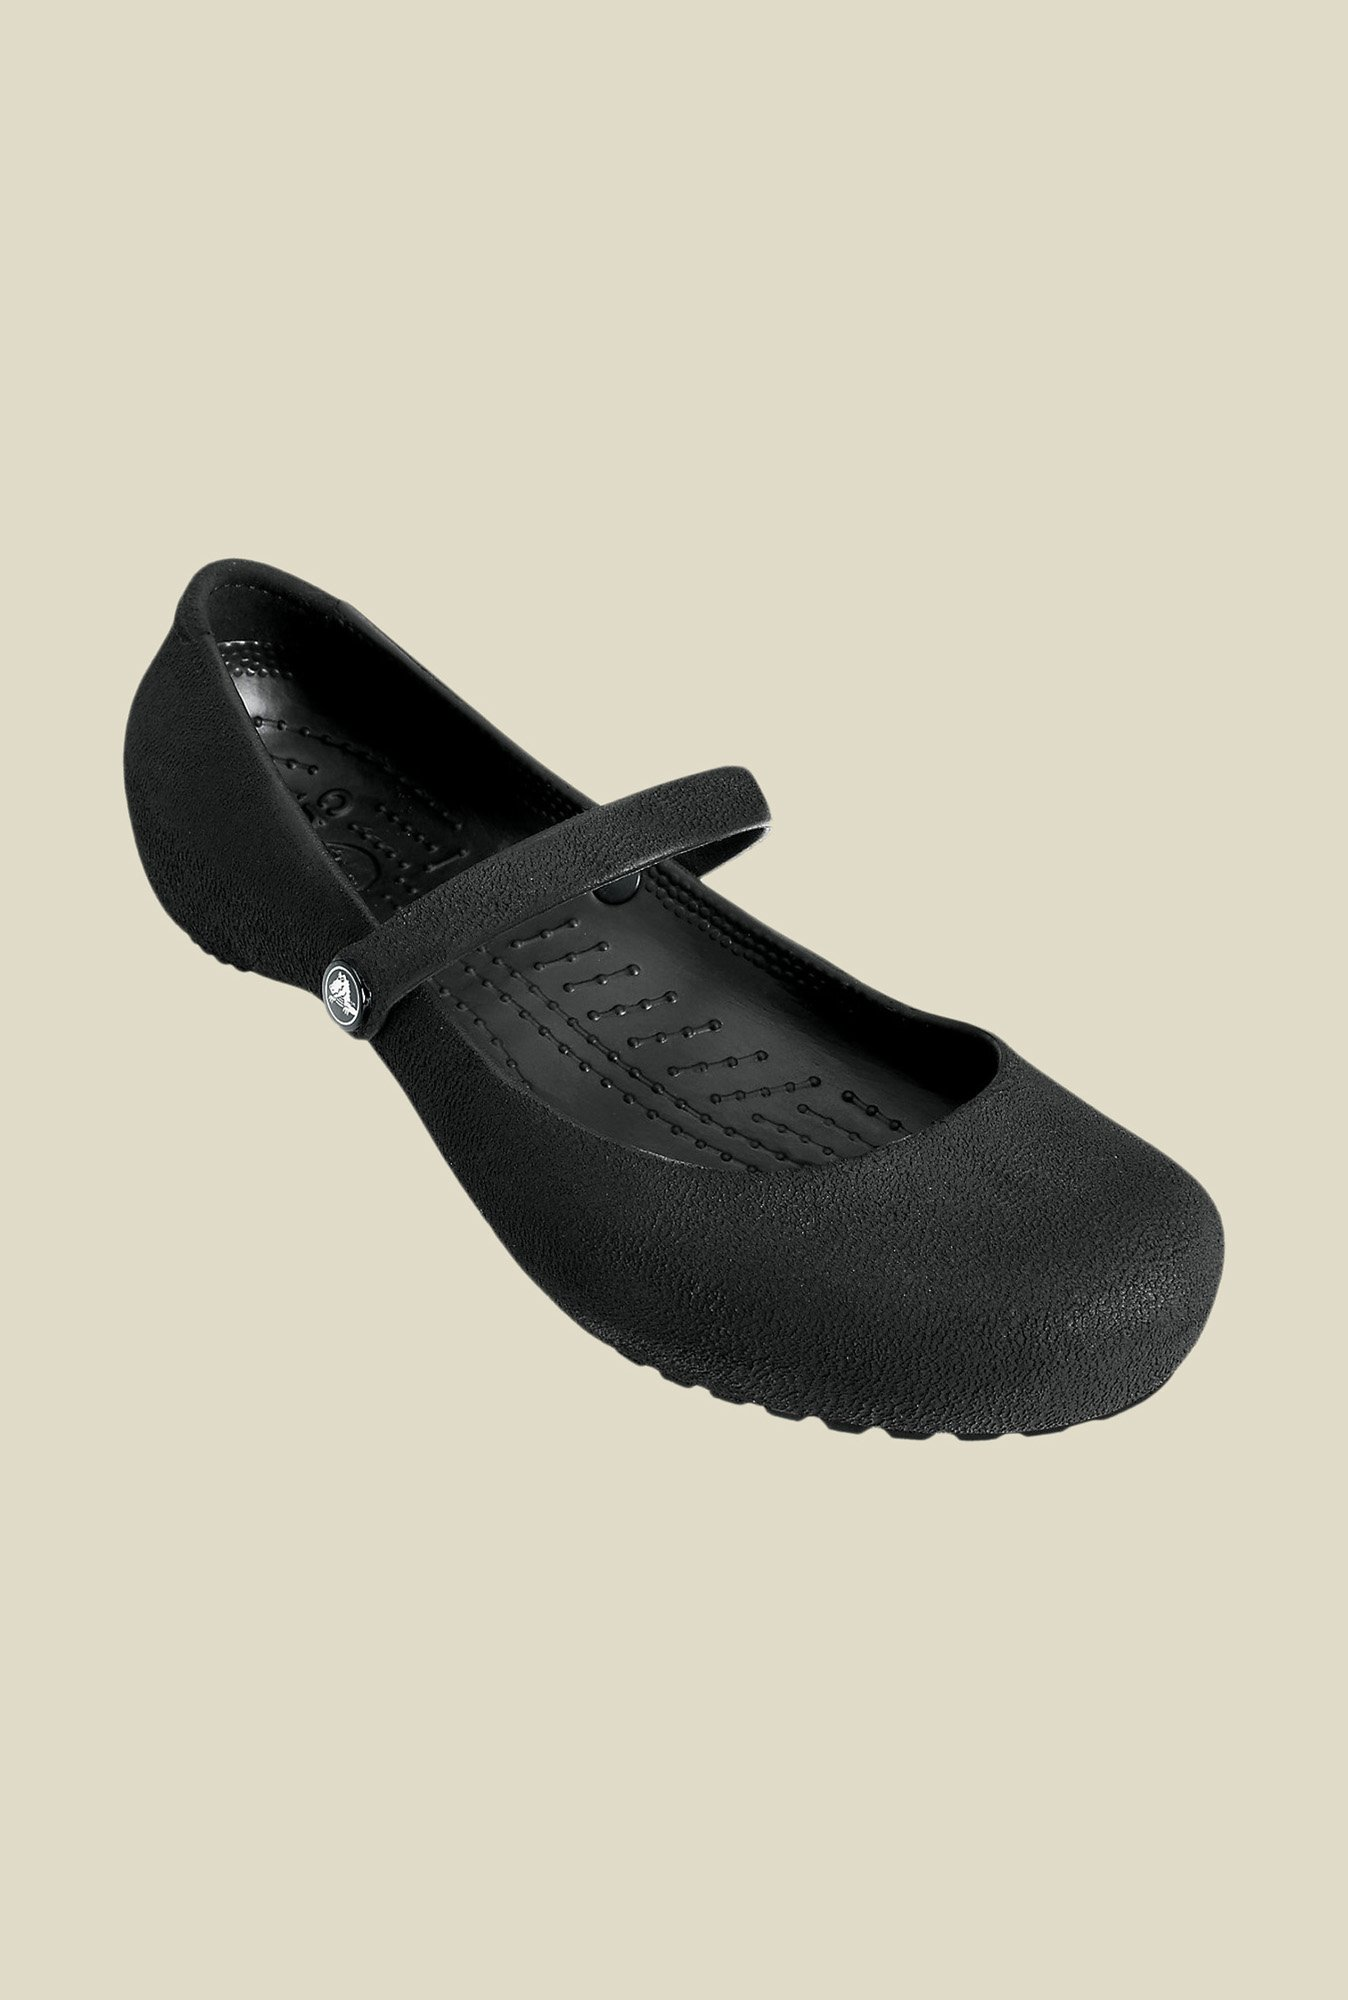 Crocs Alice Black Slide Sandals